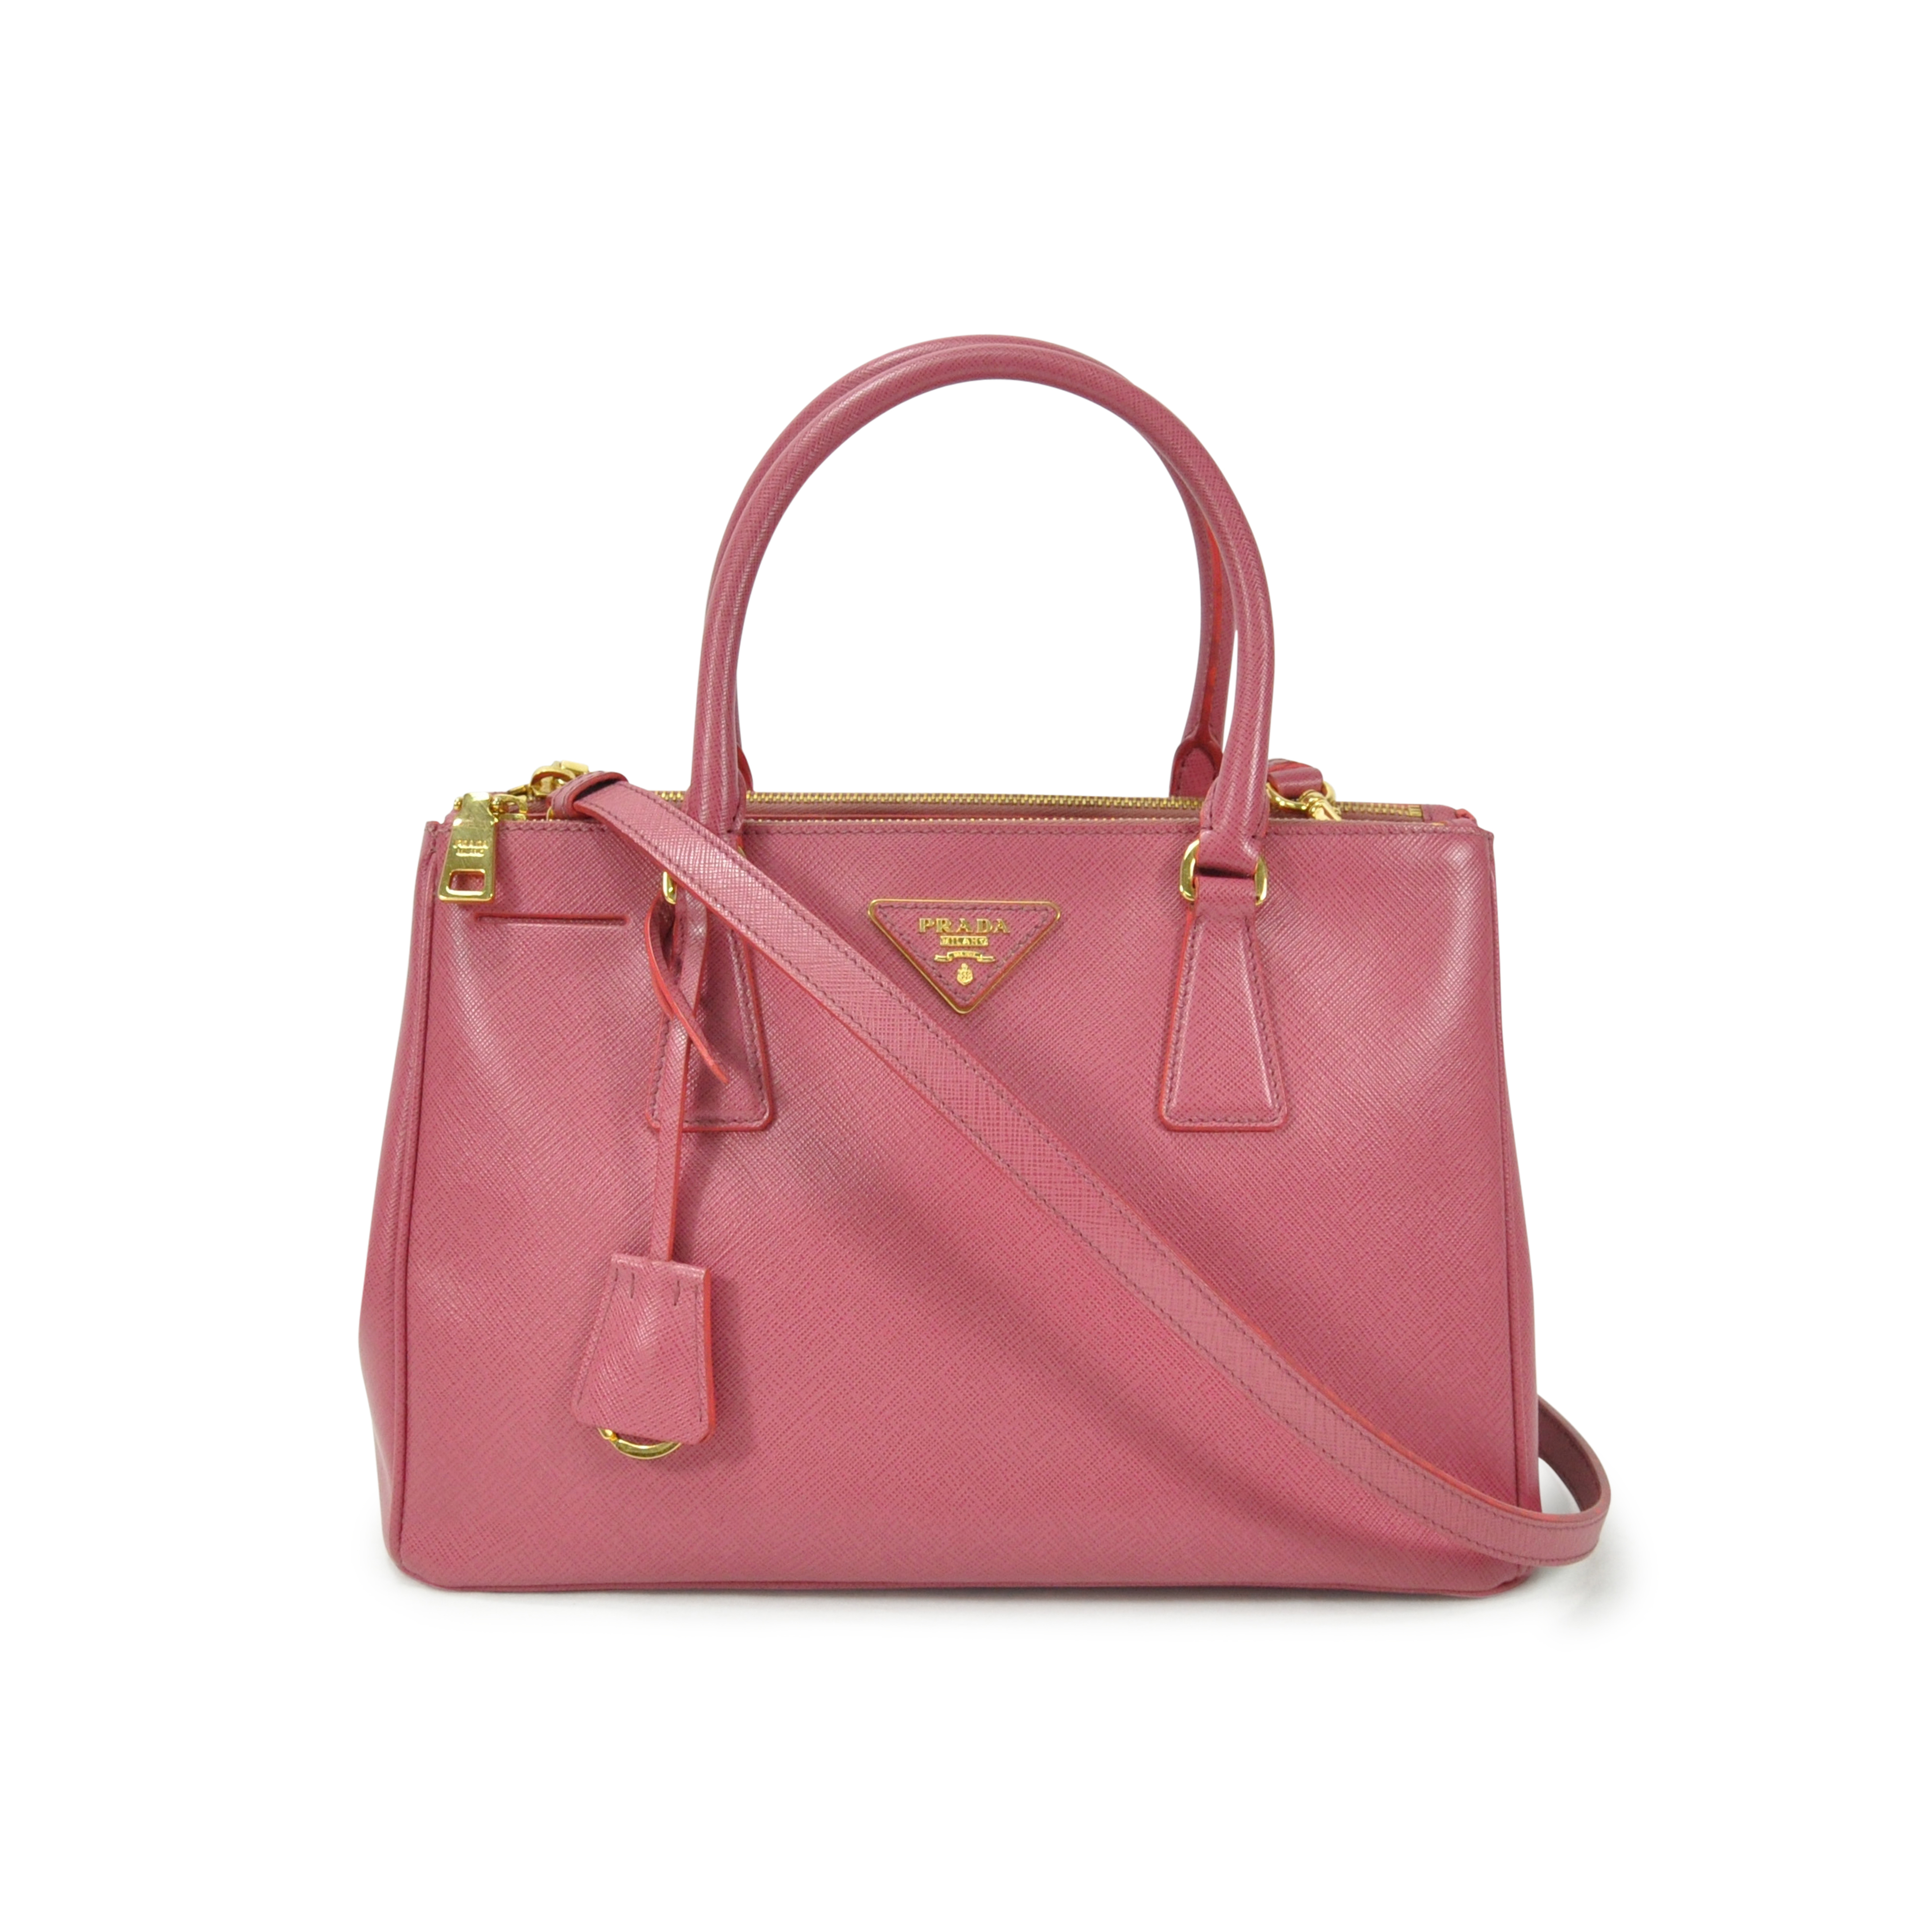 481f2a288520 Authentic Second Hand Prada Galleria Small Bag (PSS-304-00019)